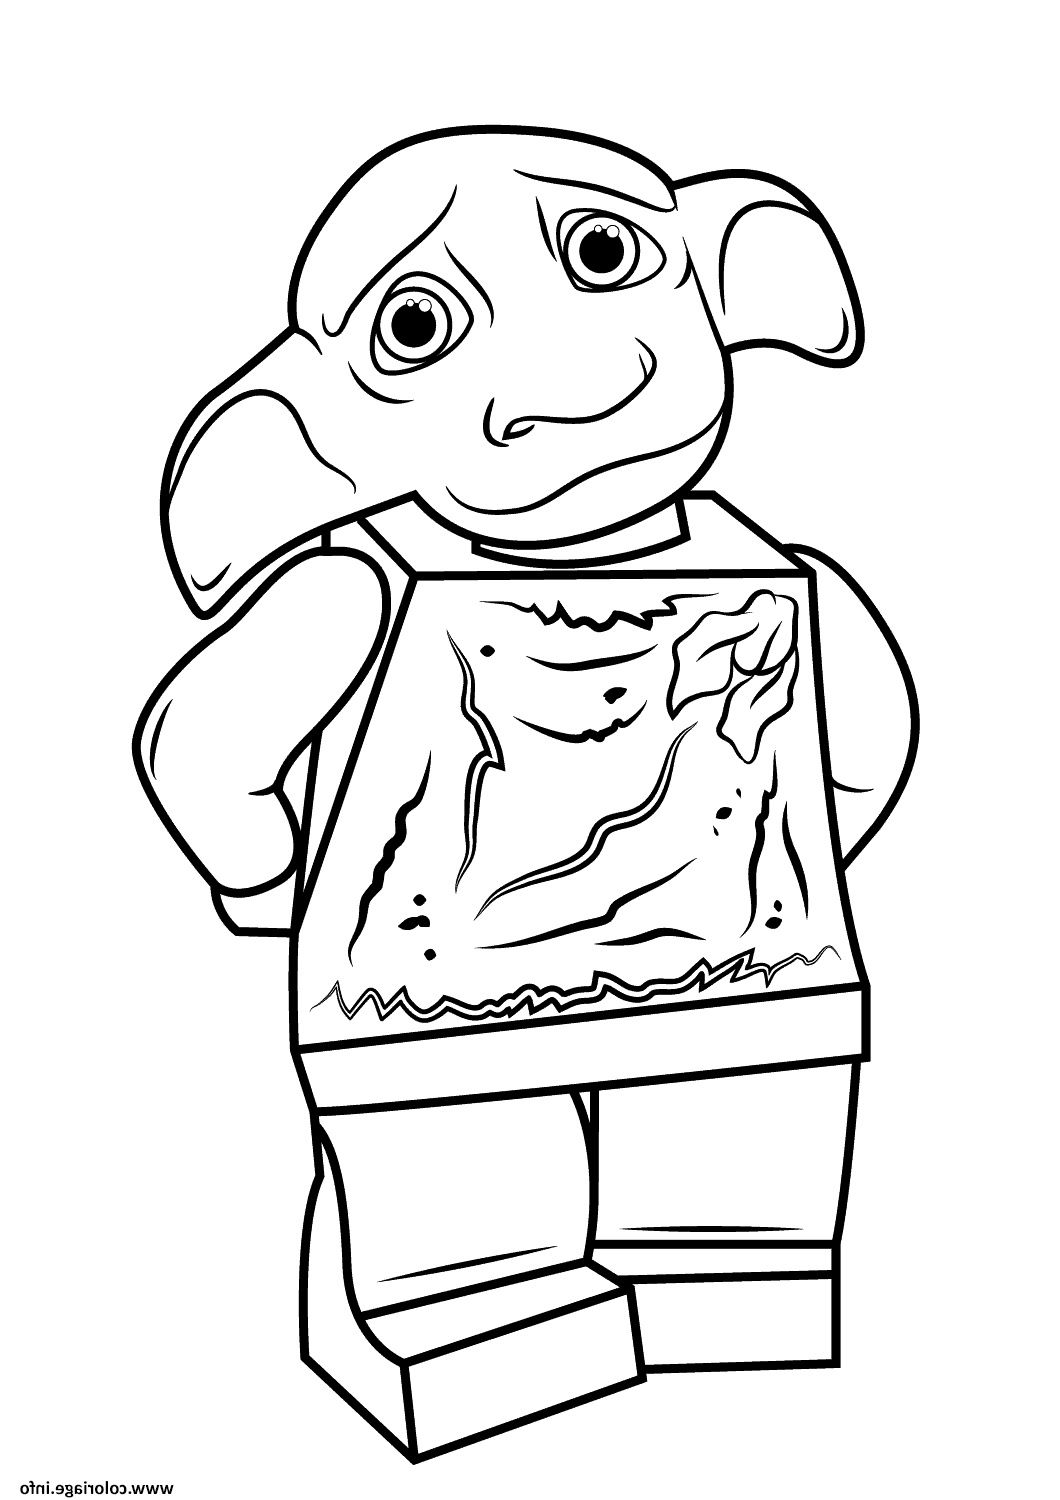 Lego Harry Potter Dobby Harry Potter Coloriage Dessin Harrypotter